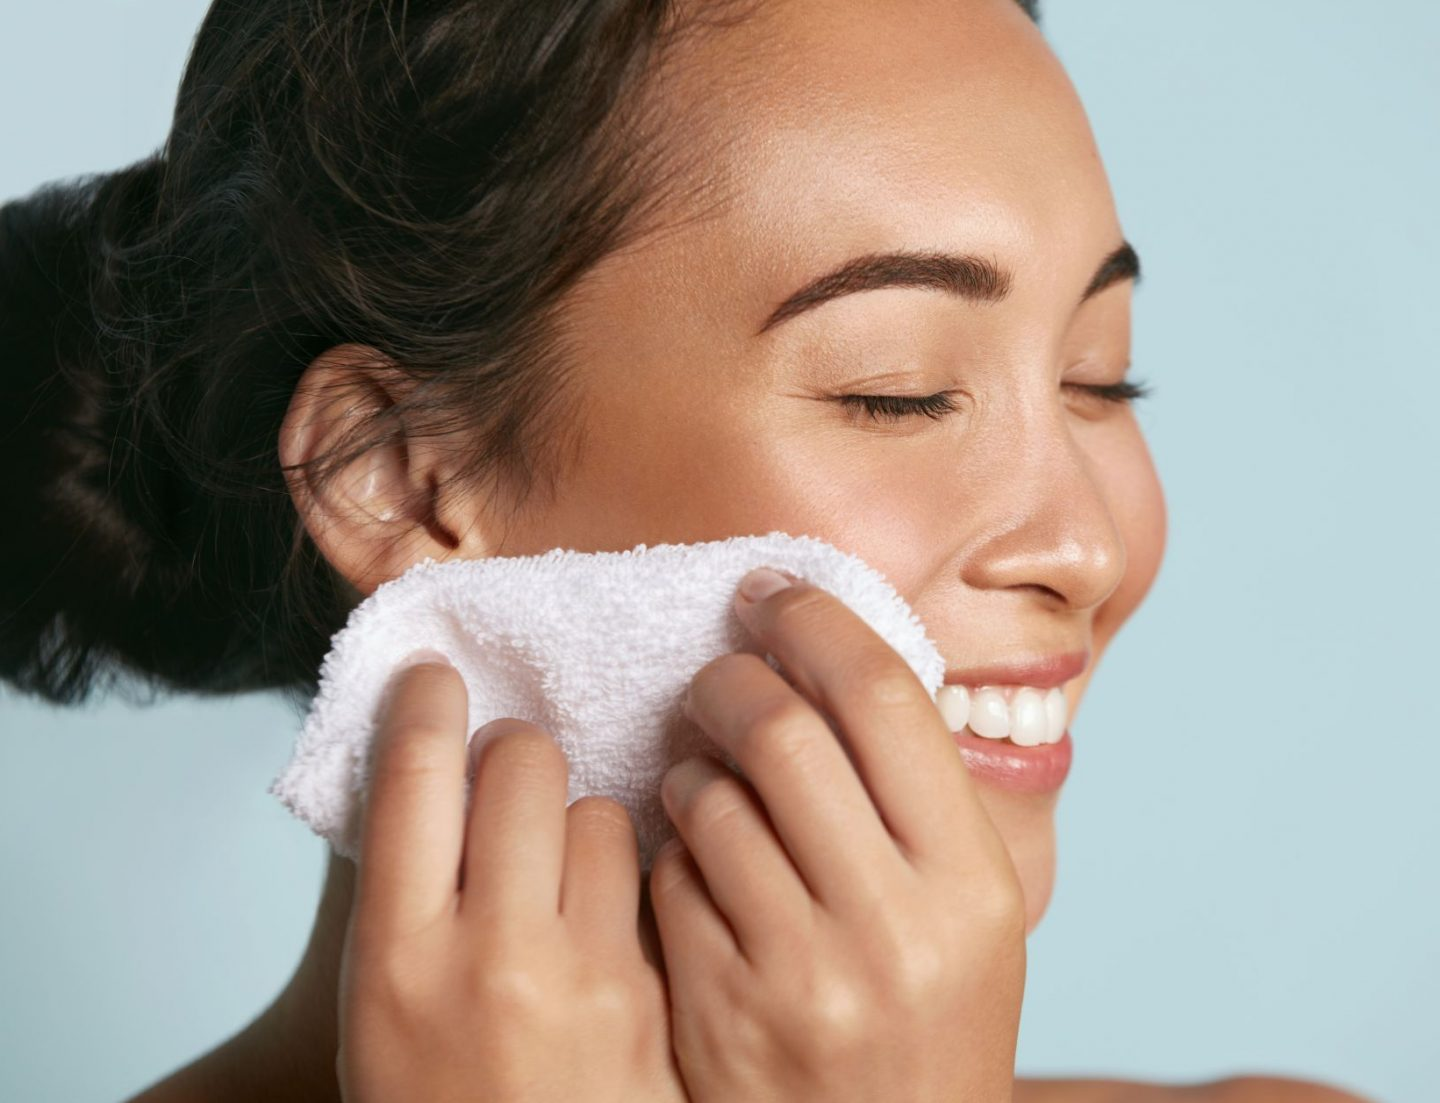 face cleanse with cloth